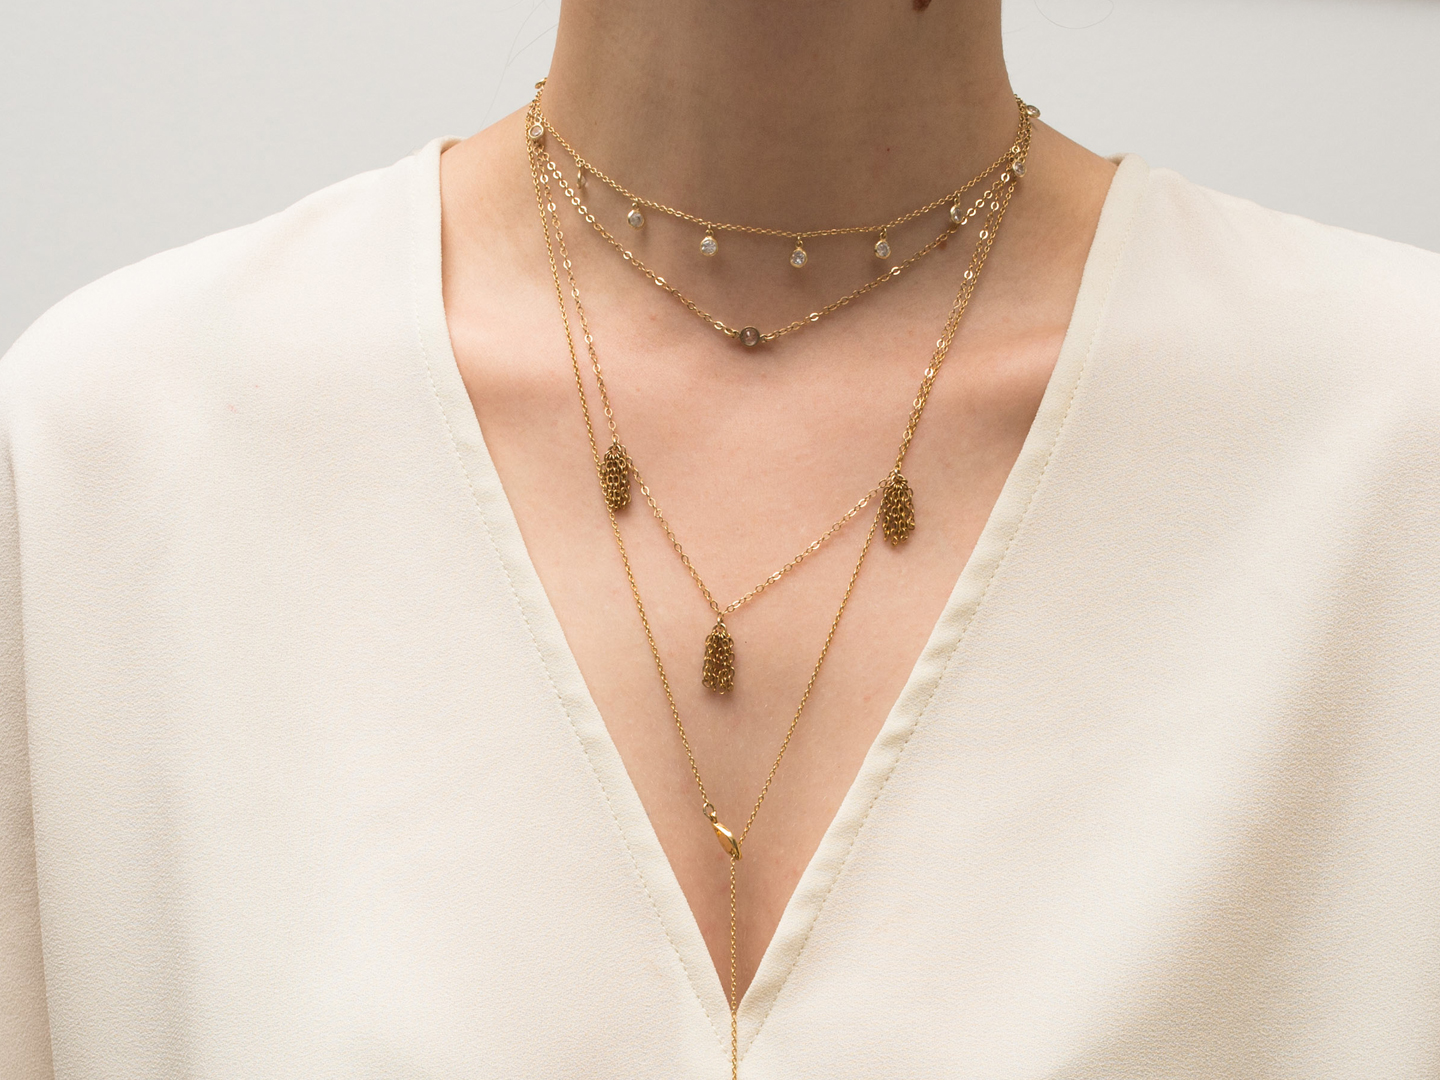 The Secret to Layering Your Necklaces Like Rosie Huntington-Whiteley